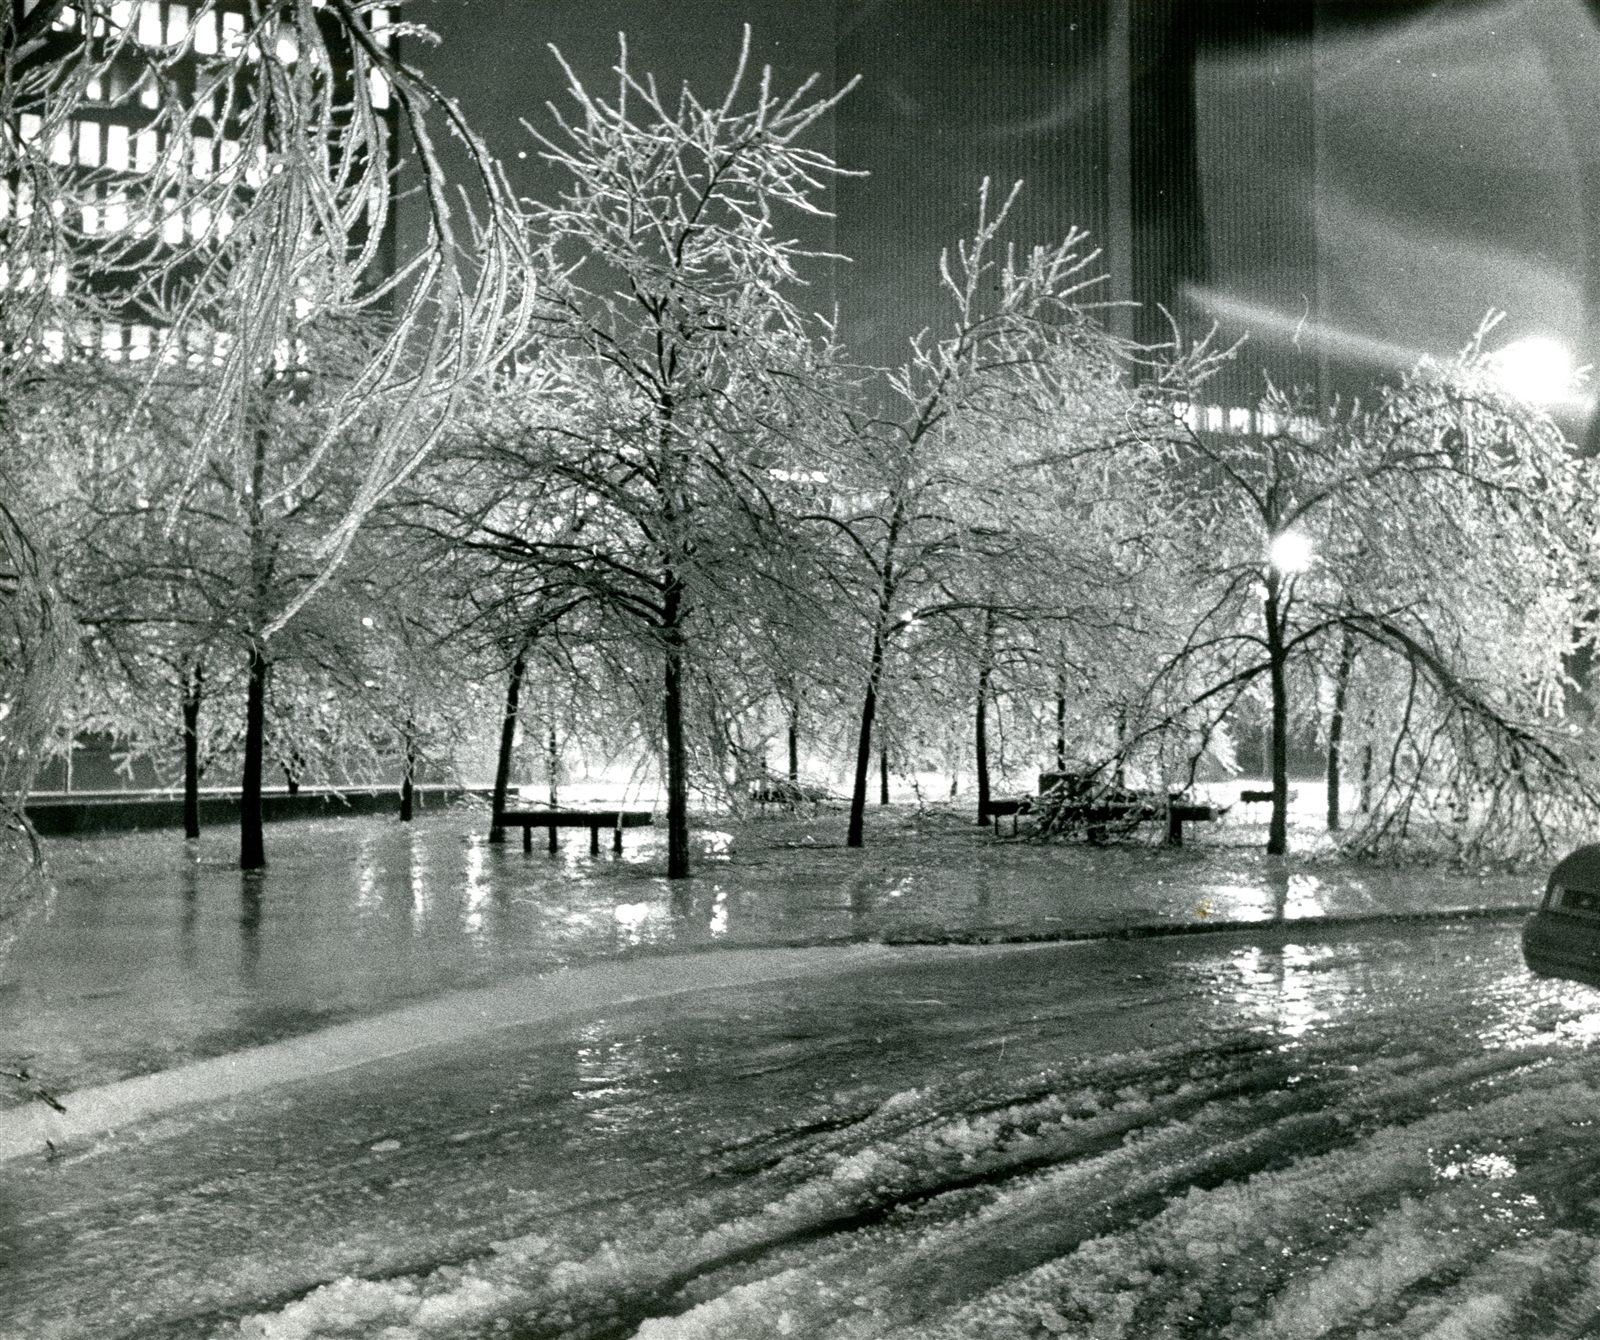 10. The Ice Storm of 1976 -- It would be even more memorable if not for what happened 10 months later.